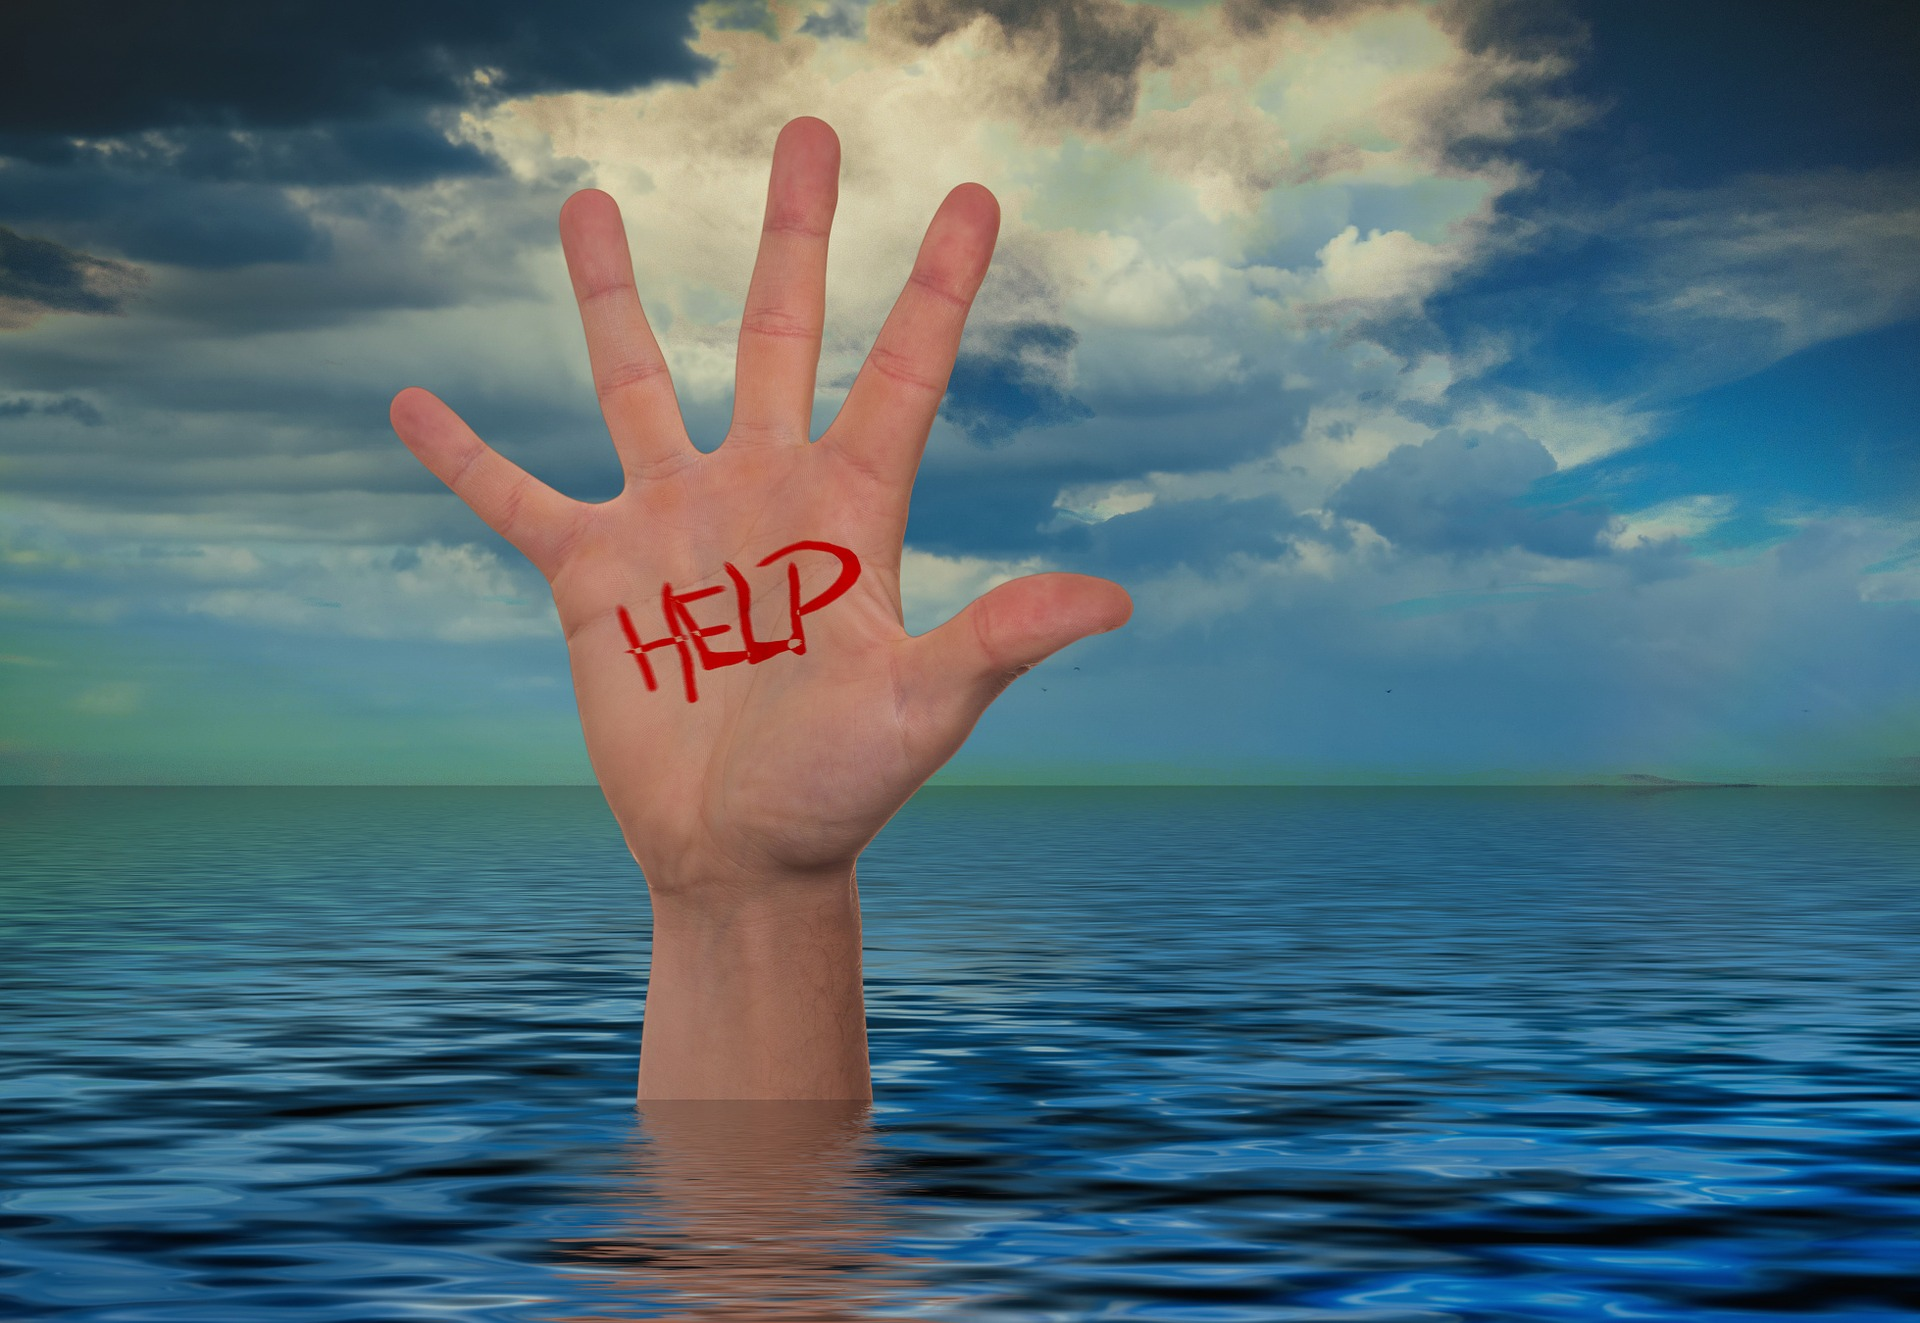 Hand Poking Through Water With 'Help' Written In Read To Signify A Disaster Recovery Plan